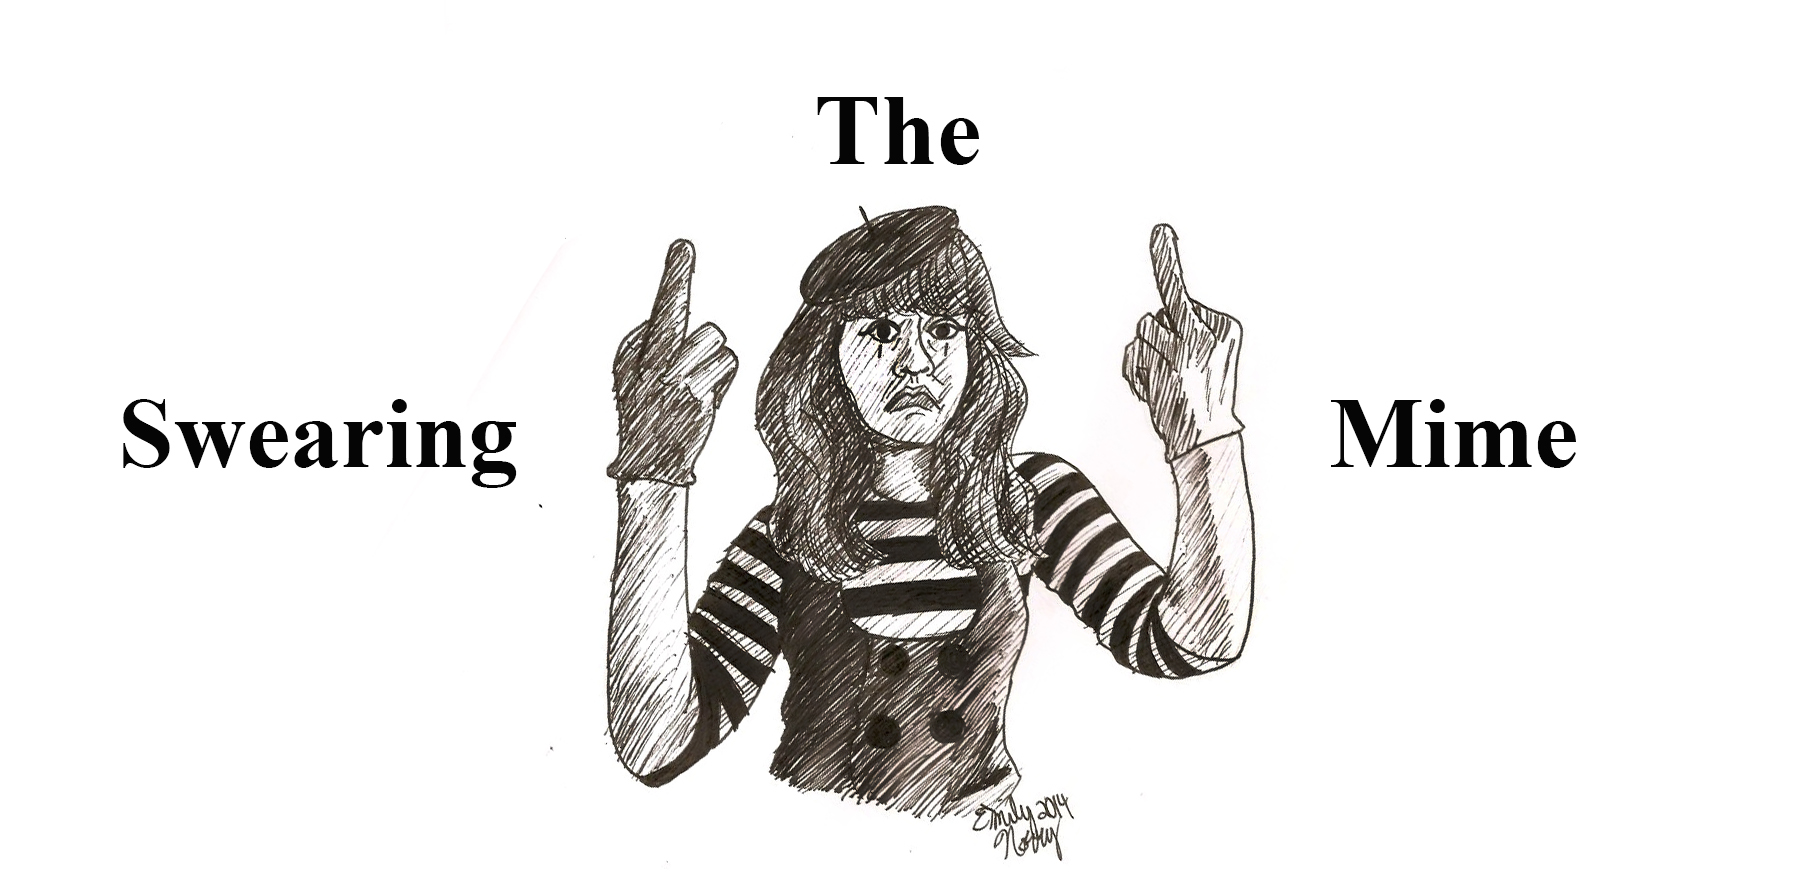 The Swearing Mime